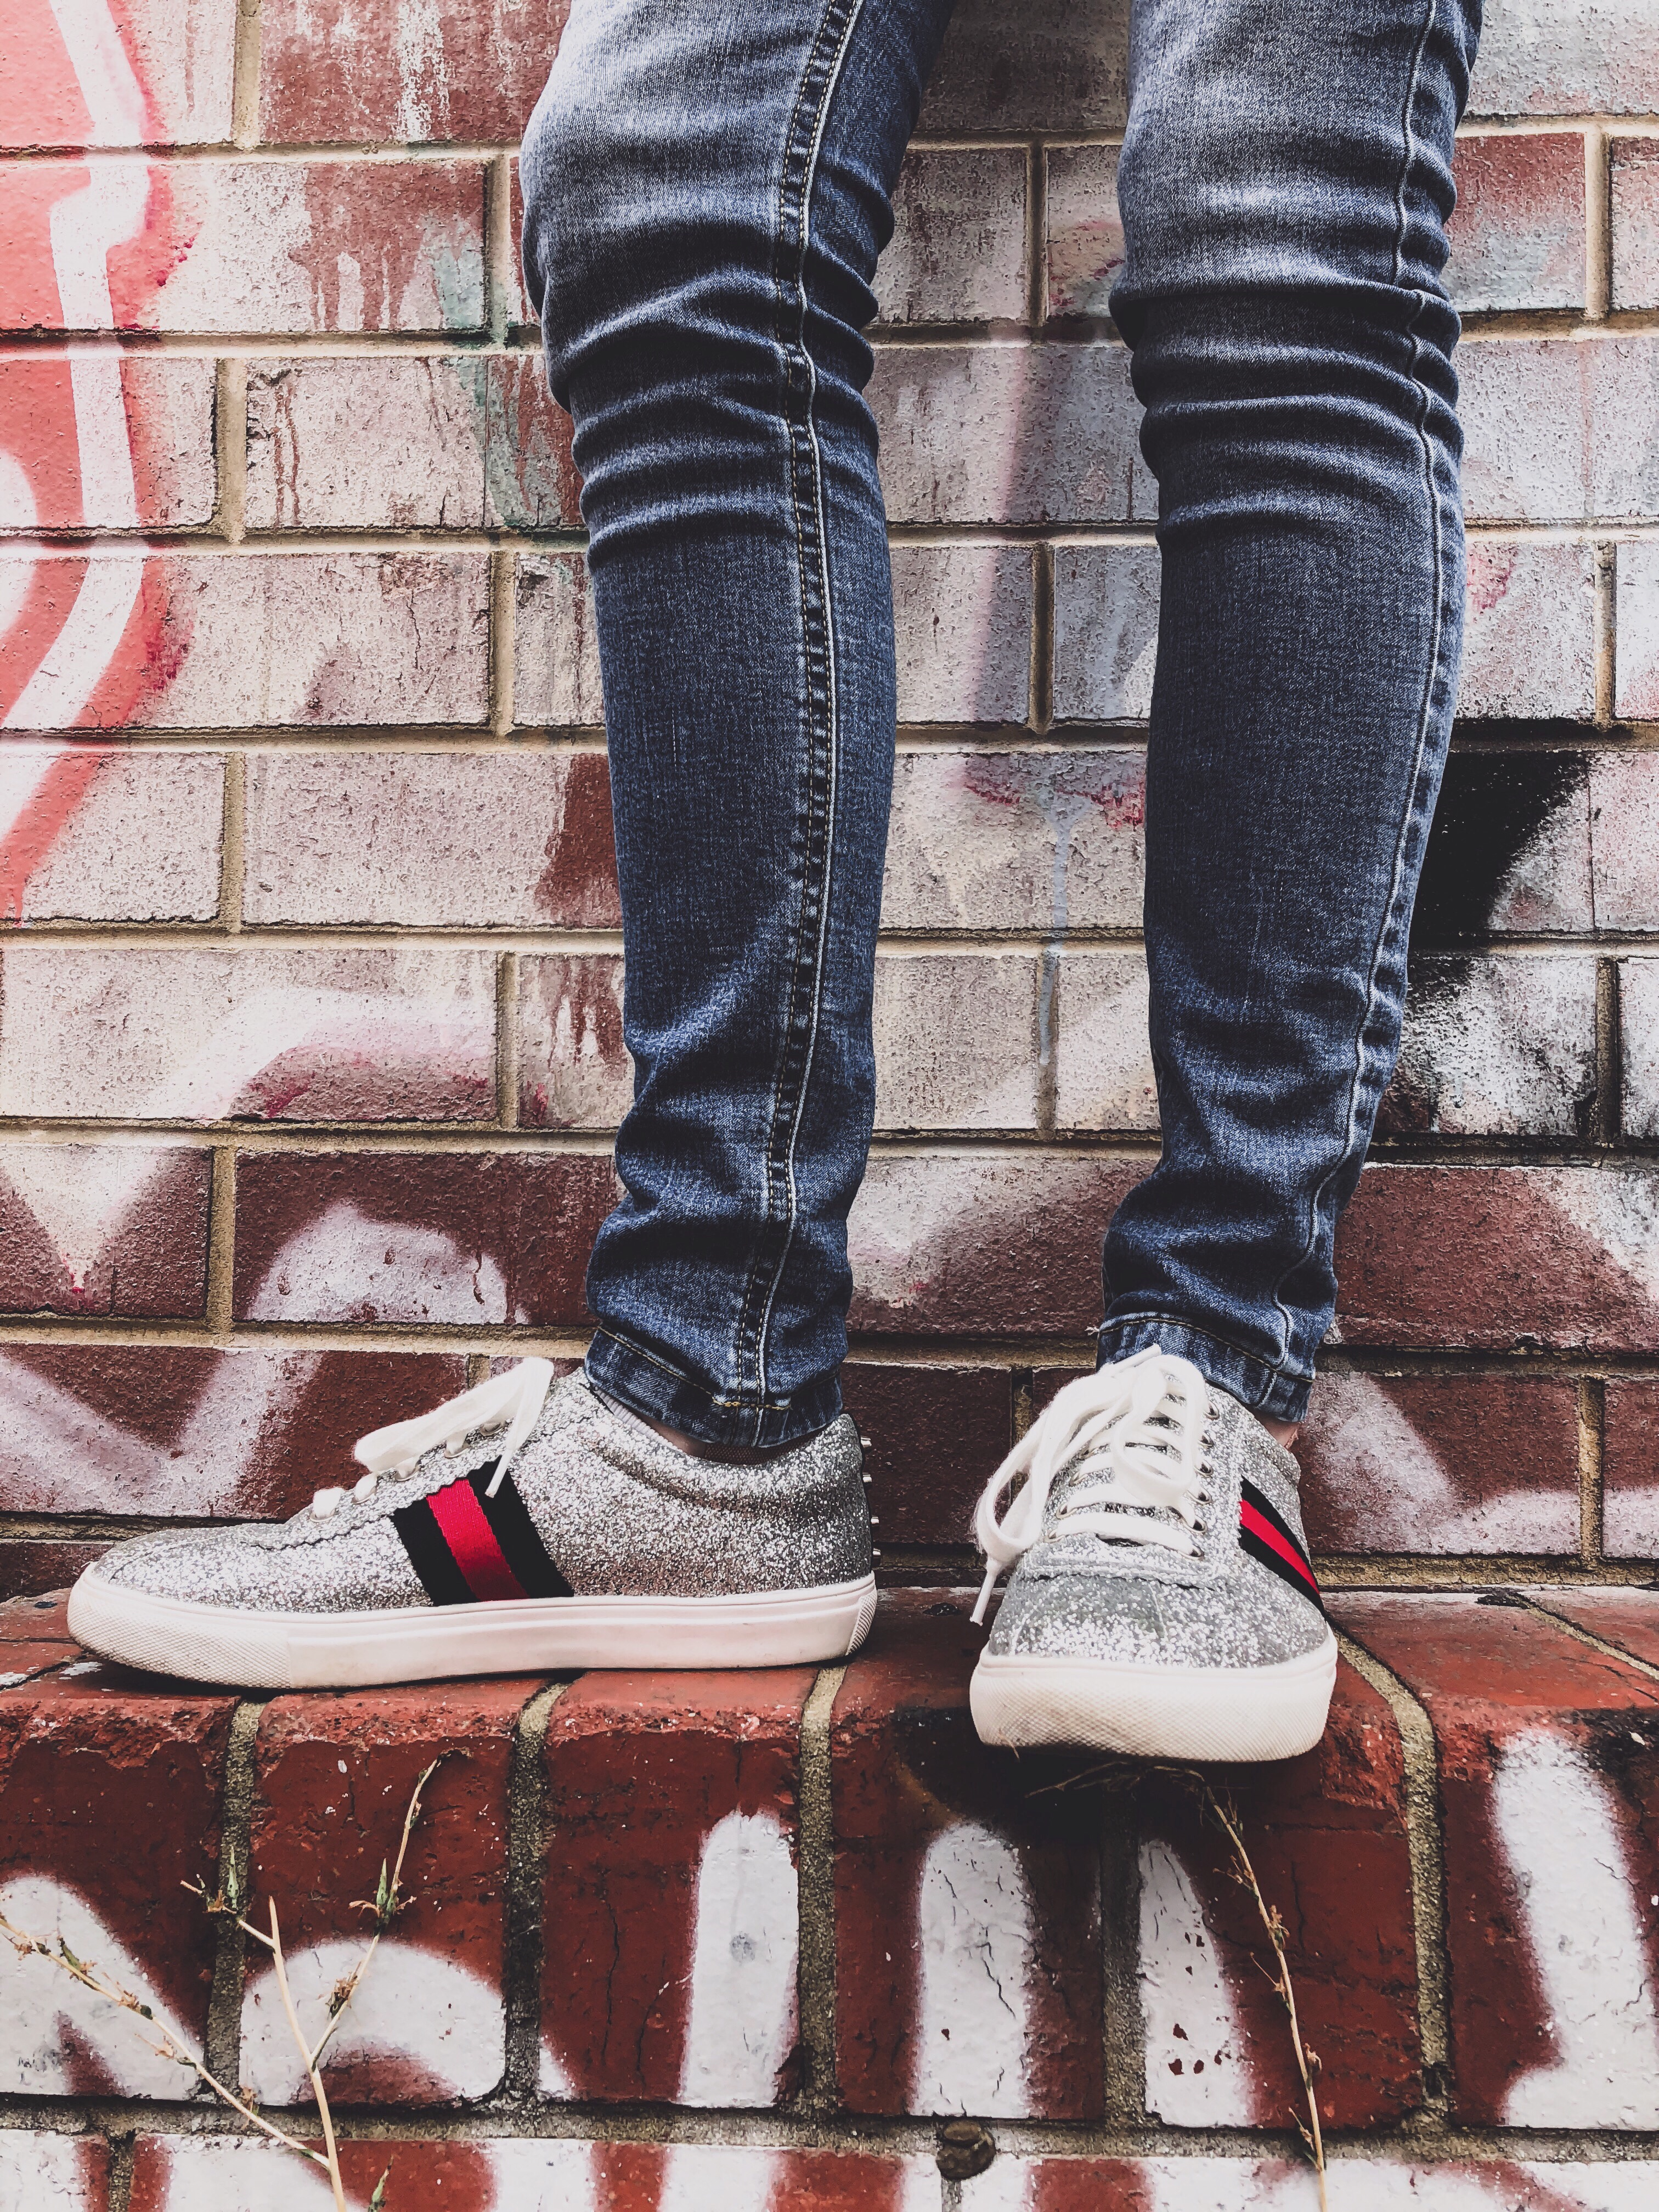 Gucci Ace Sneakers: Dupes